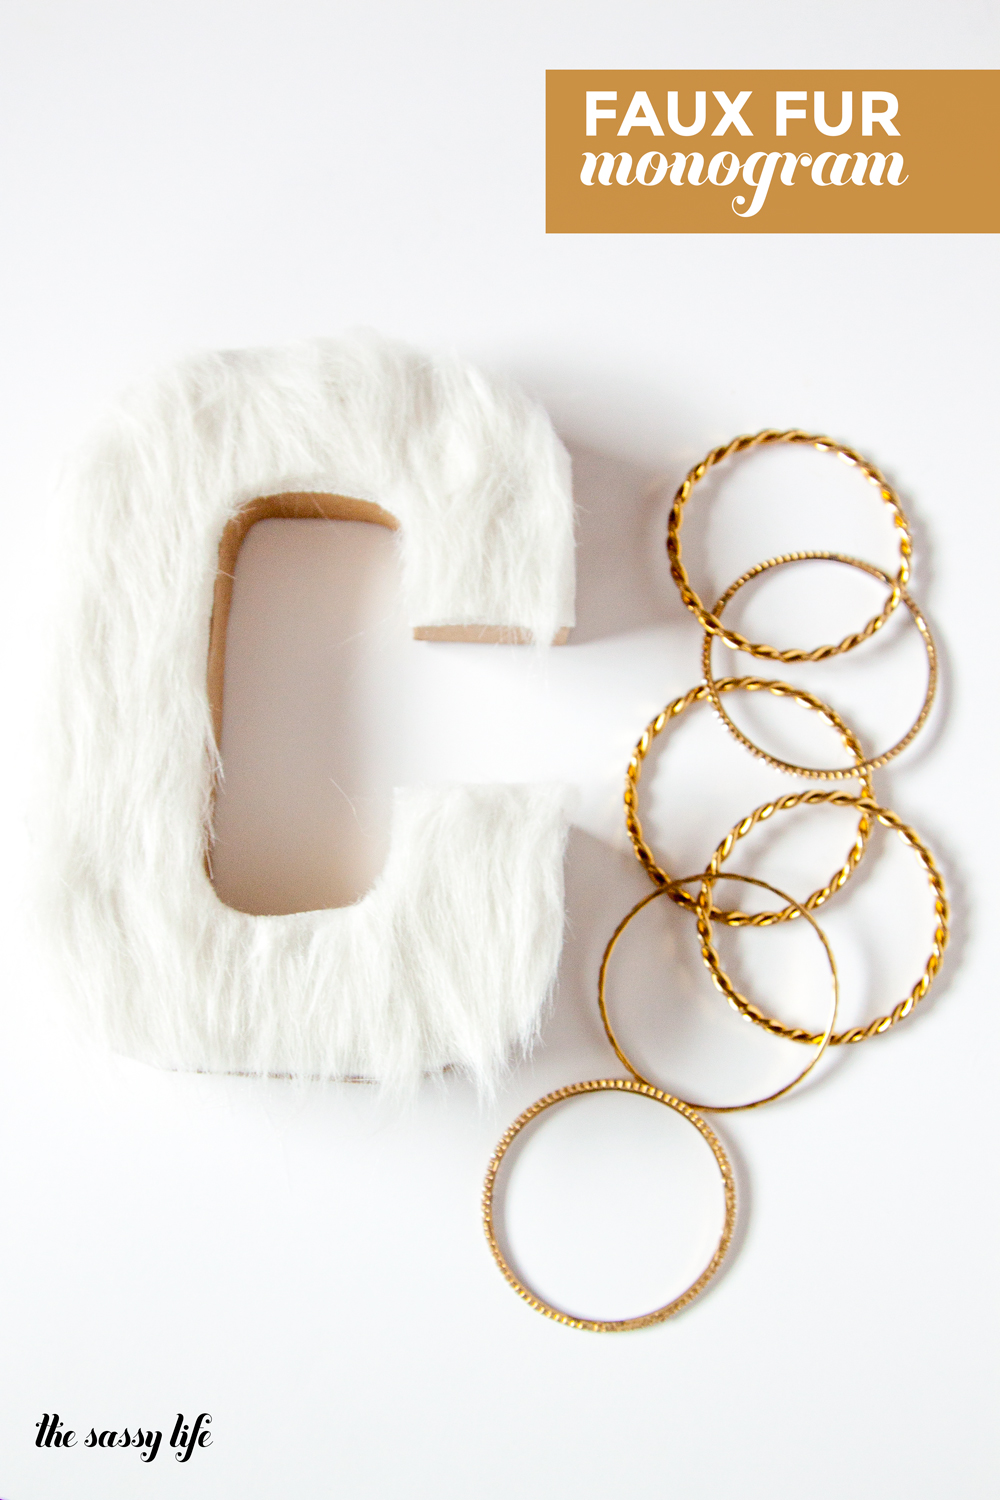 Faux Fur Monogram